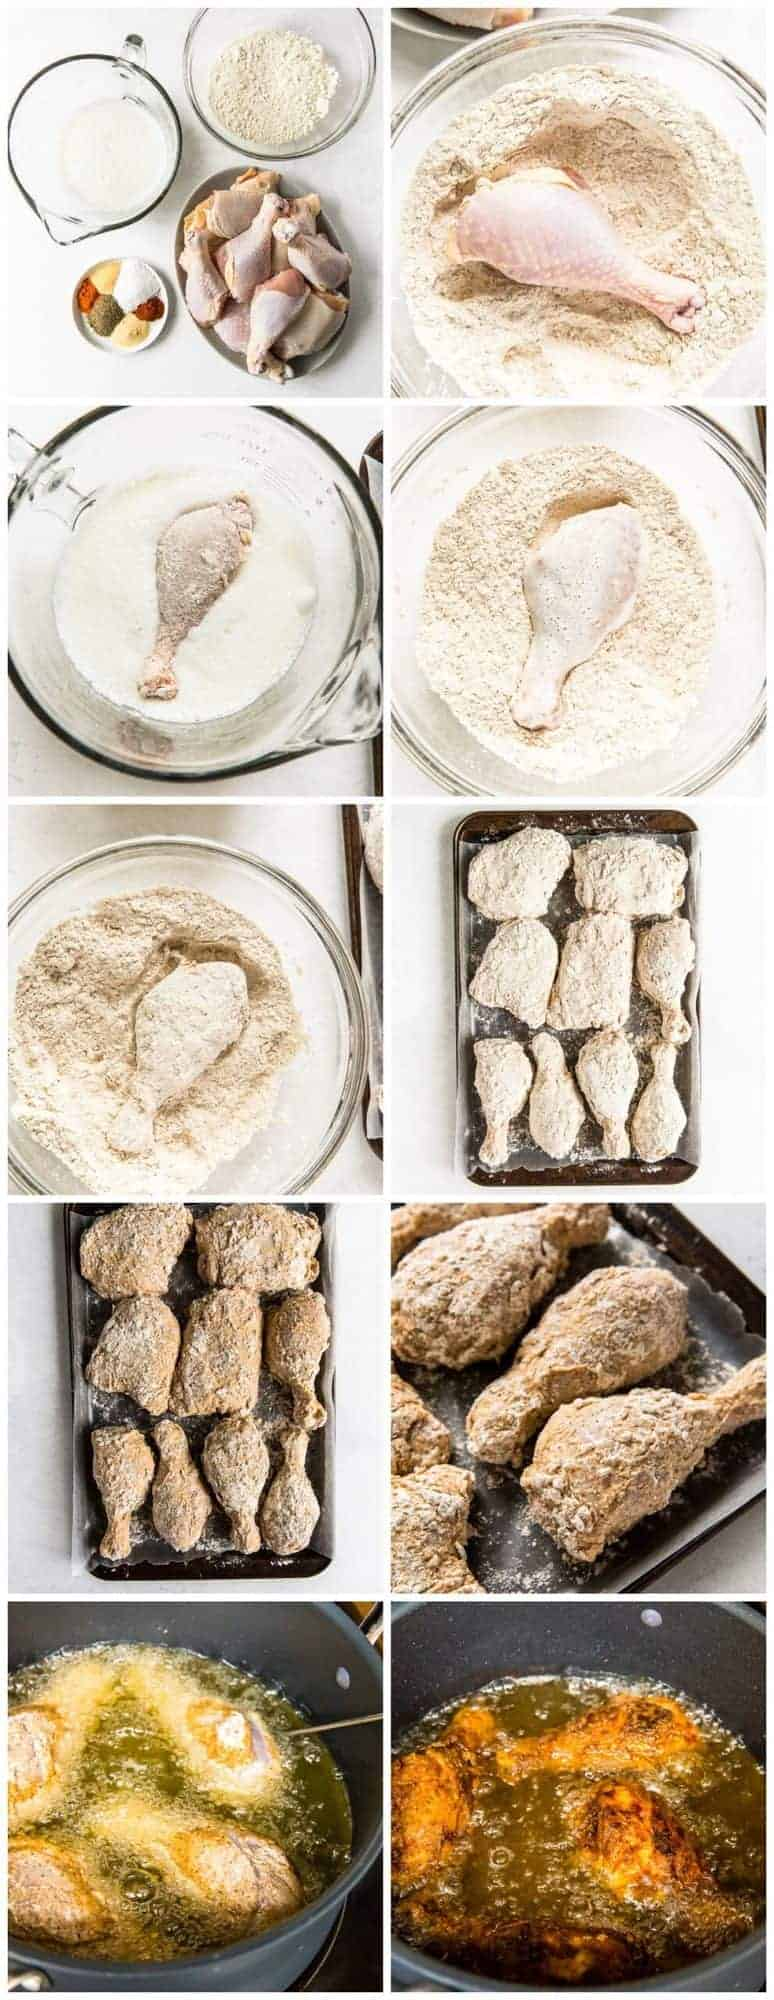 step by step photos for how to make fried chicken